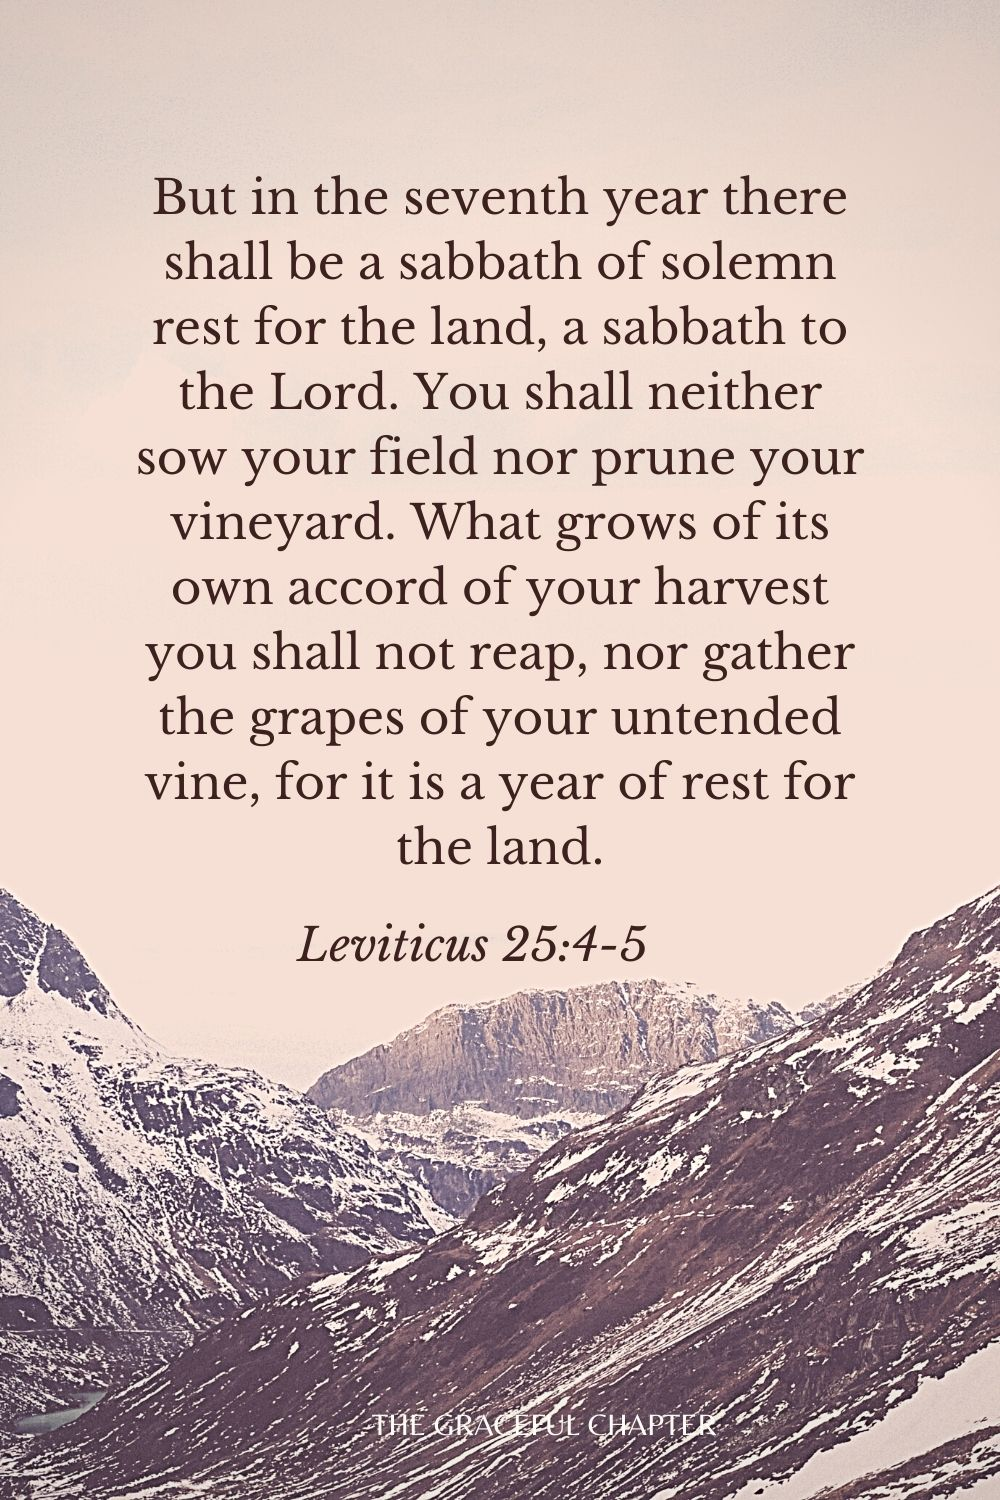 But in the seventh year there shall be a sabbath of solemn rest for the land, a sabbath to the Lord. You shall neither sow your field nor prune your vineyard. What grows of its own accord of your harvest you shall not reap, nor gather the grapes of your untended vine, for it is a year of rest for the land. Leviticus 25:4-5